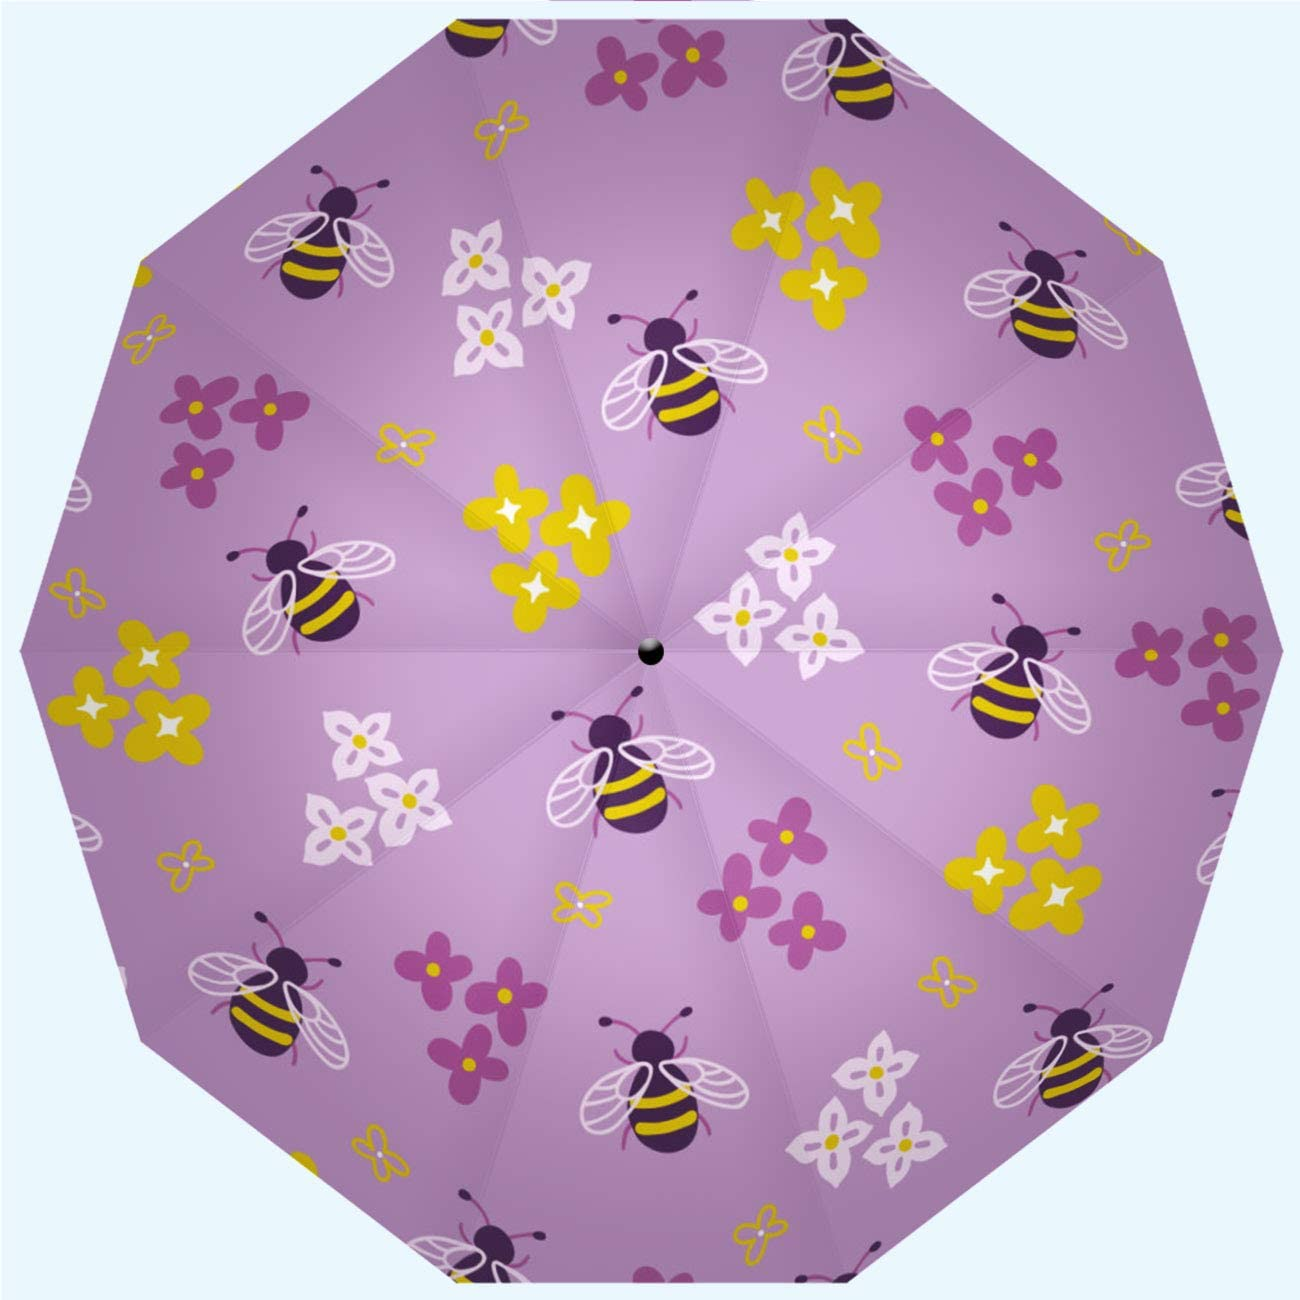 Men 42 Inches 10 Ribs Ladies Automatic Opening and Closing,Prophecy Love Joy Red Heart Shaped Tree Purple Red,Windproof Rainproof RLDSESS Love Compact Patio Umbrella